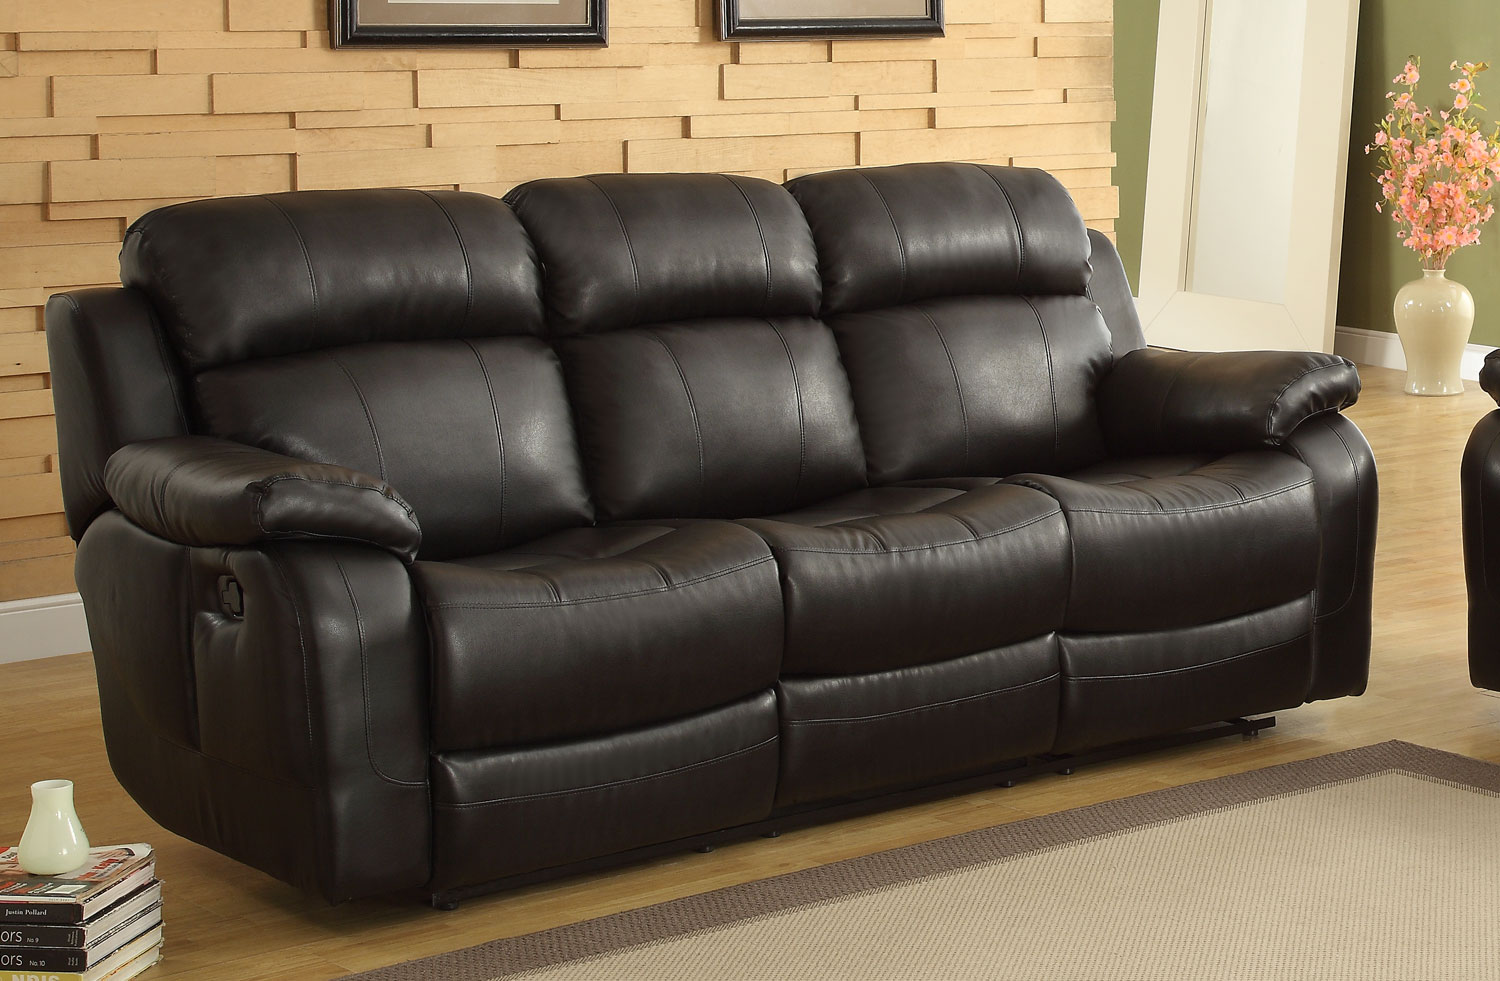 Homelegance Marille Recliner Sofa with Drop Center Cup Holder - Black - Bonded Leather Match